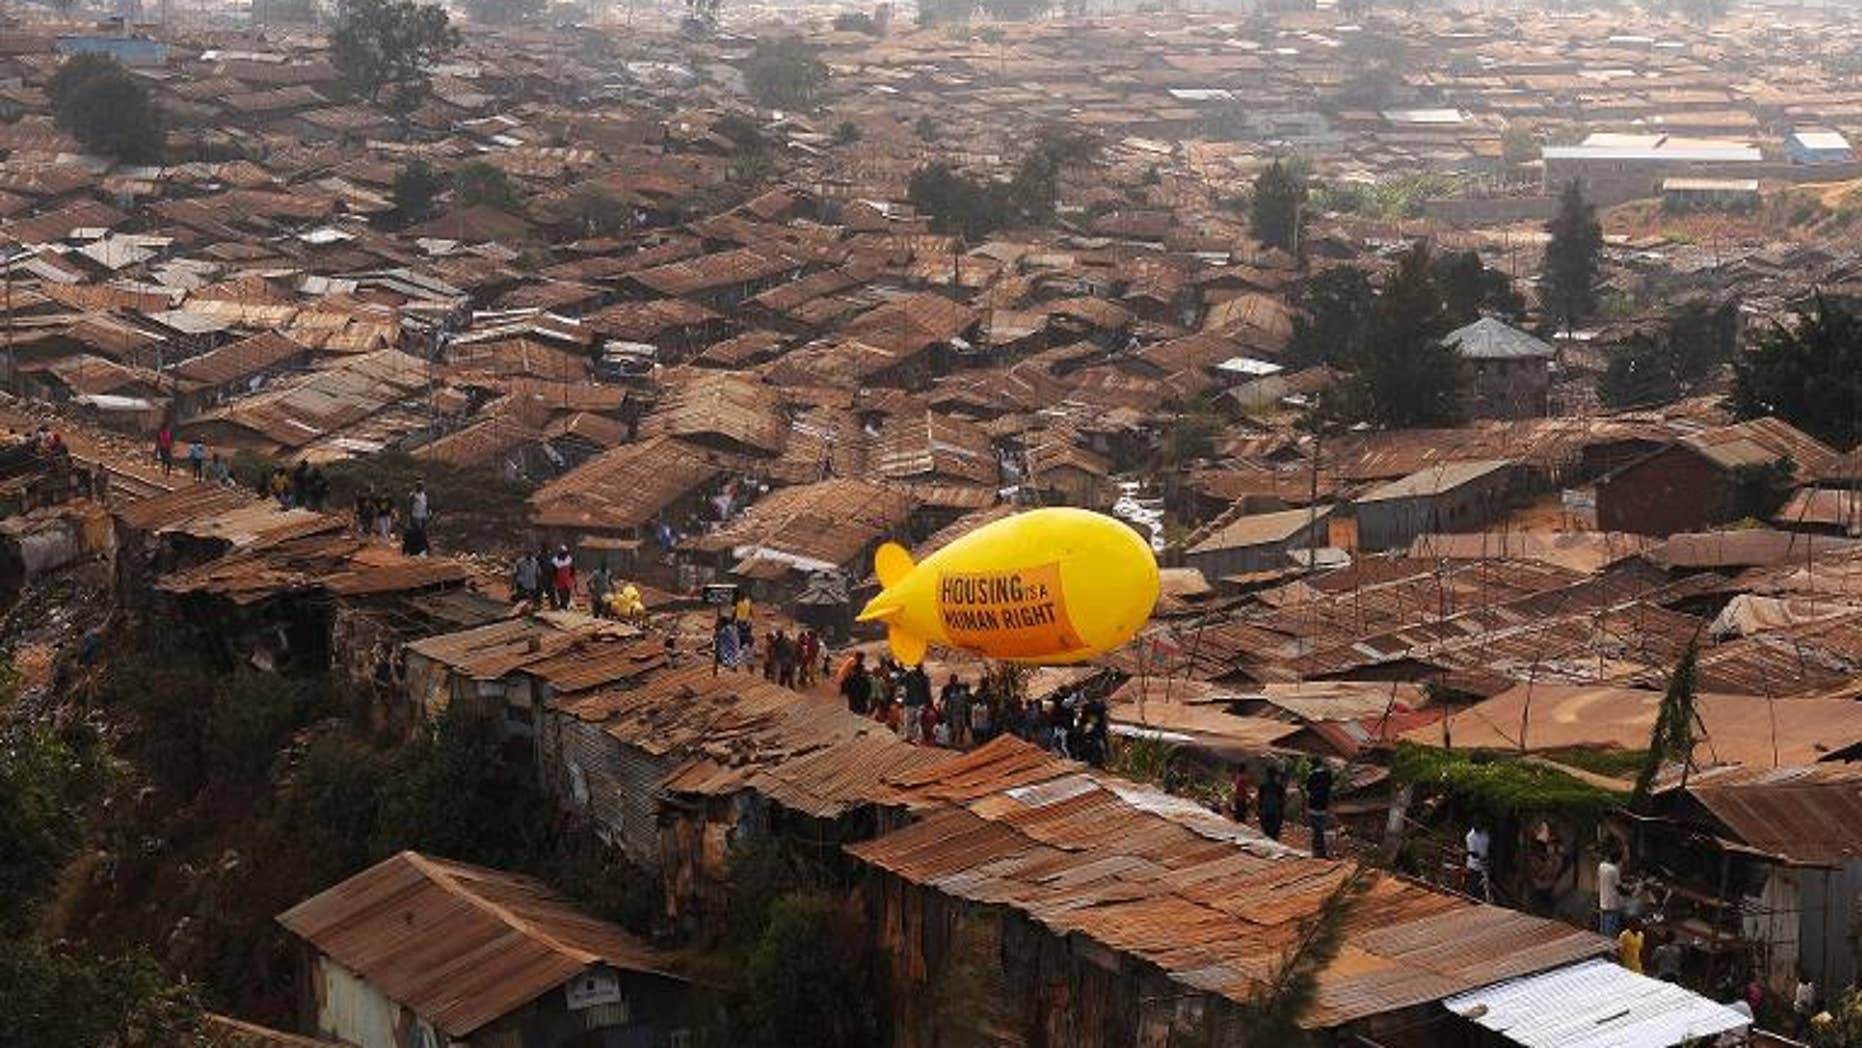 Members of NGO Amnesty International carry a hot air balloon with text which reads 'Housing is a Human right' through the Kibera slum in Nairobi on March 24, 2012